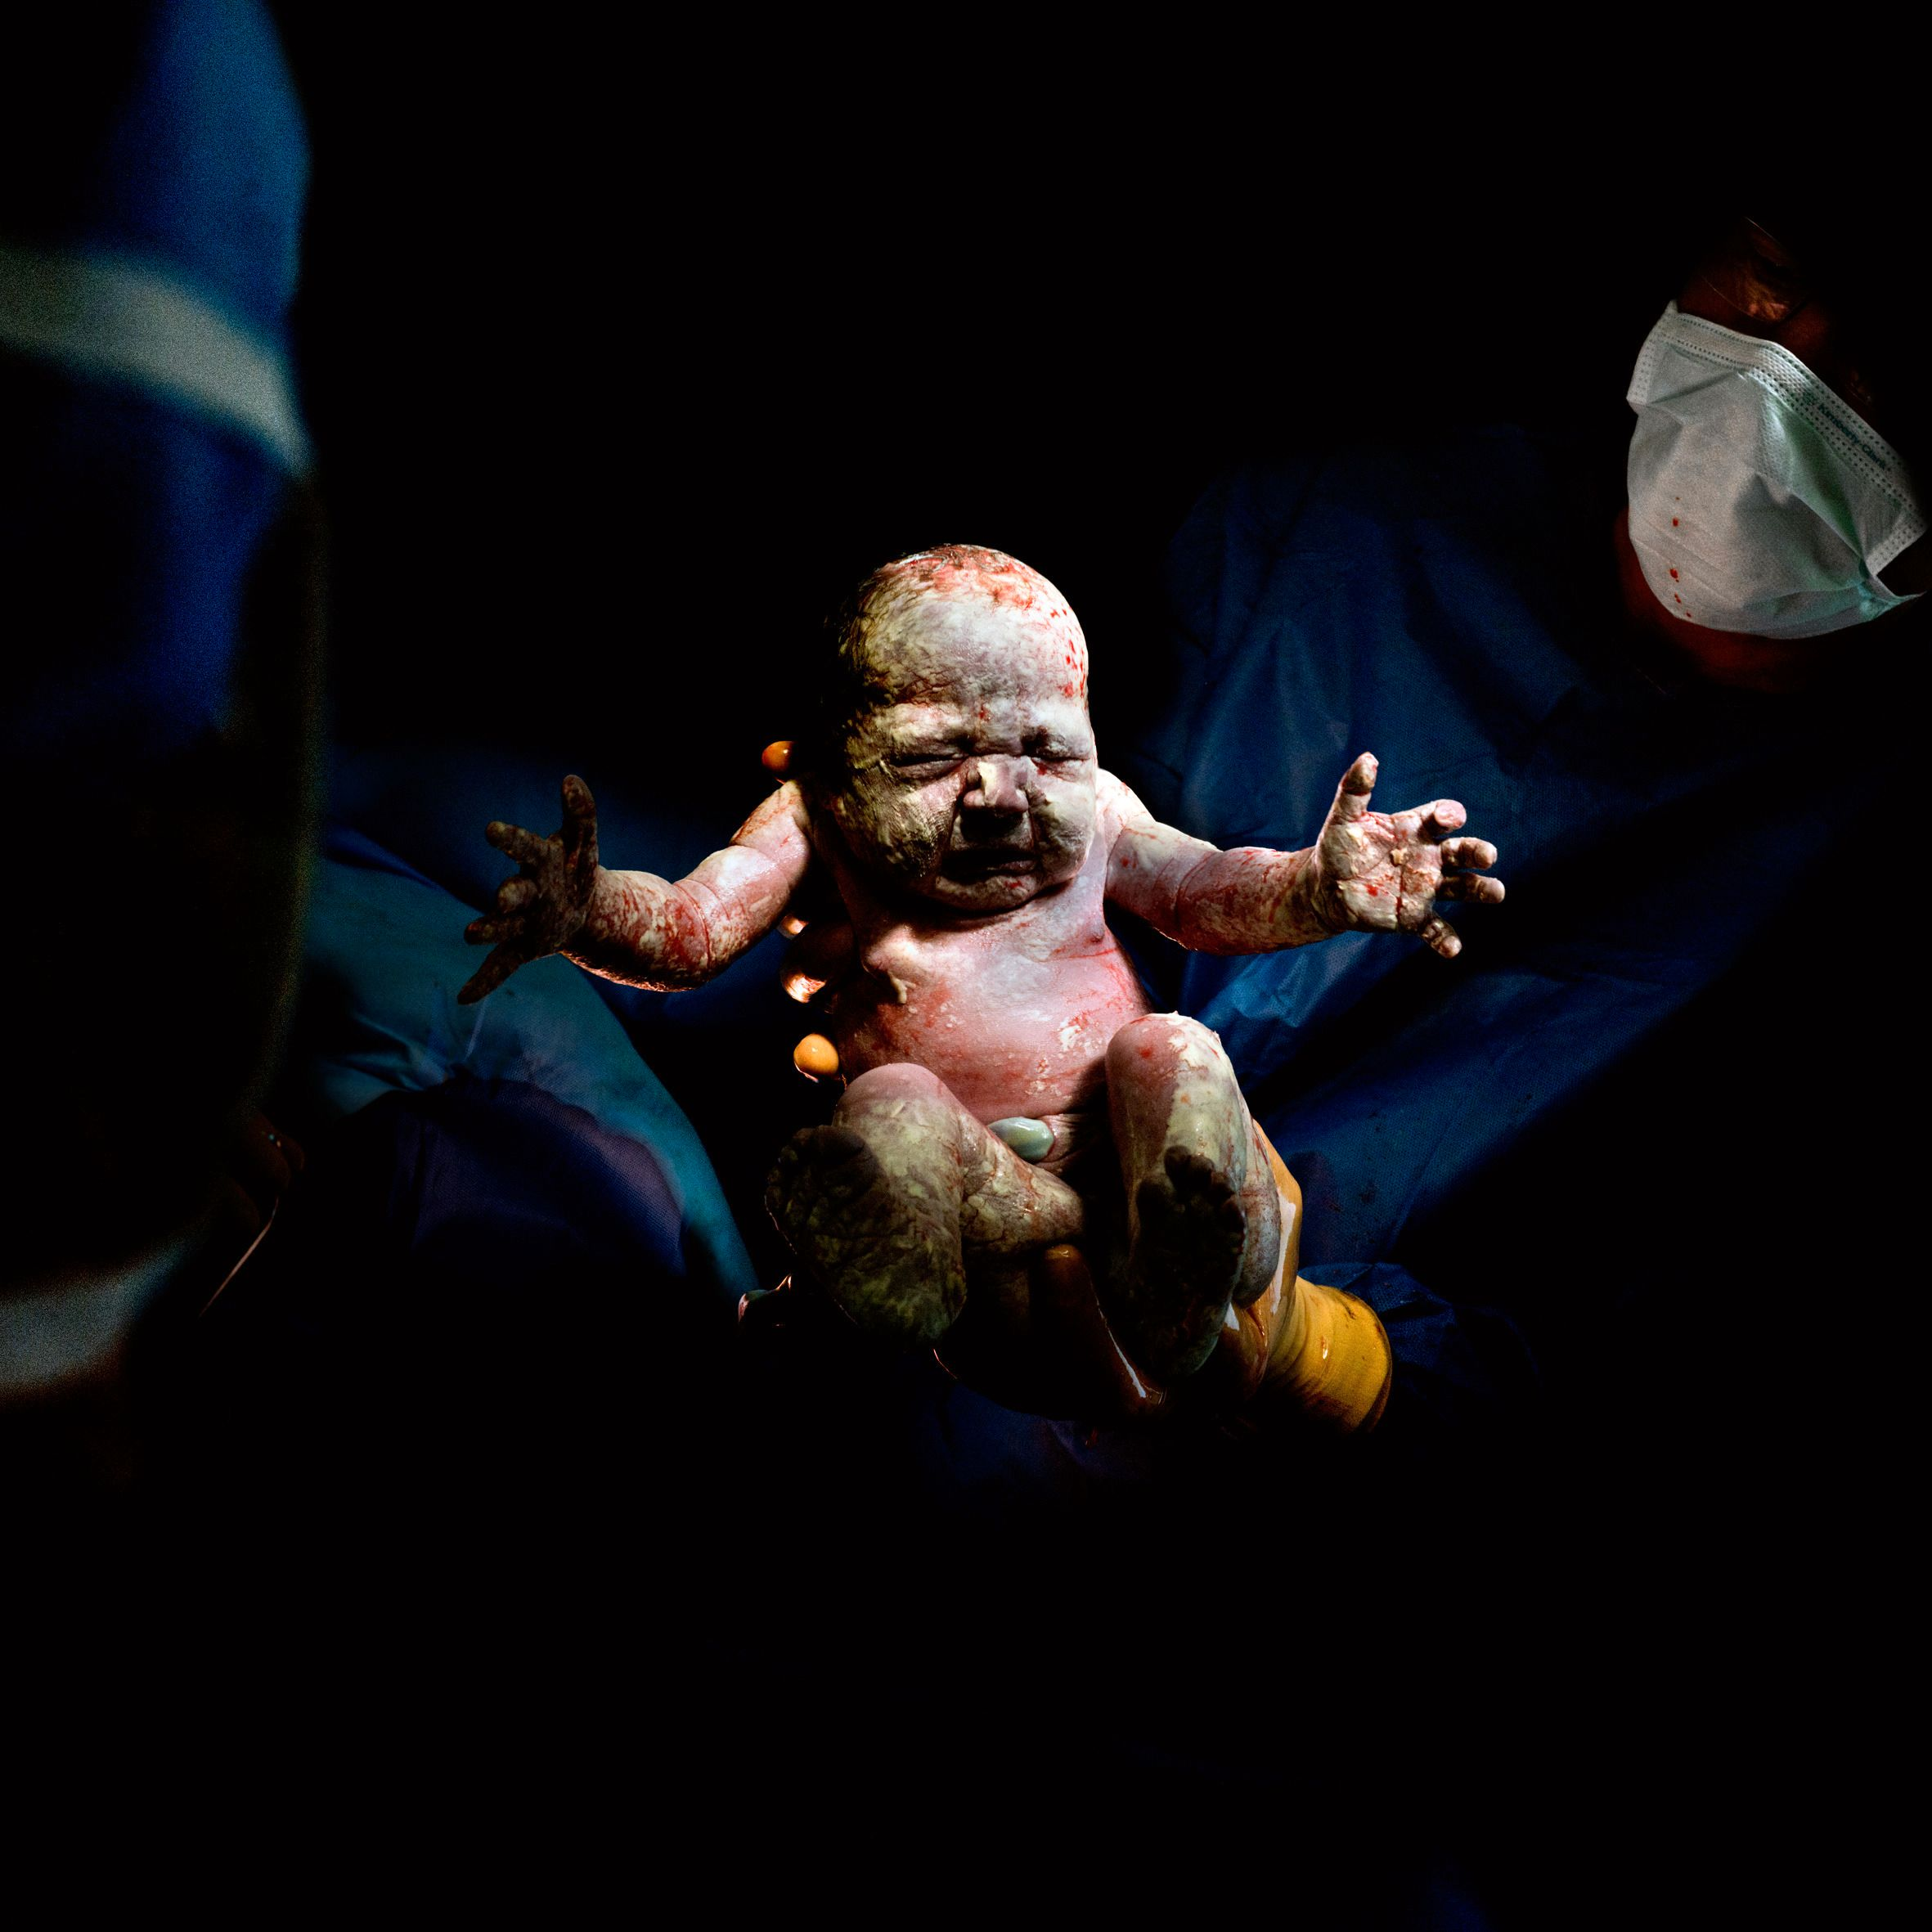 Foto: Christian Berthelot, France, Shortlist, Portraiture, Professional Competition, 2015 Sony World Photography Awards